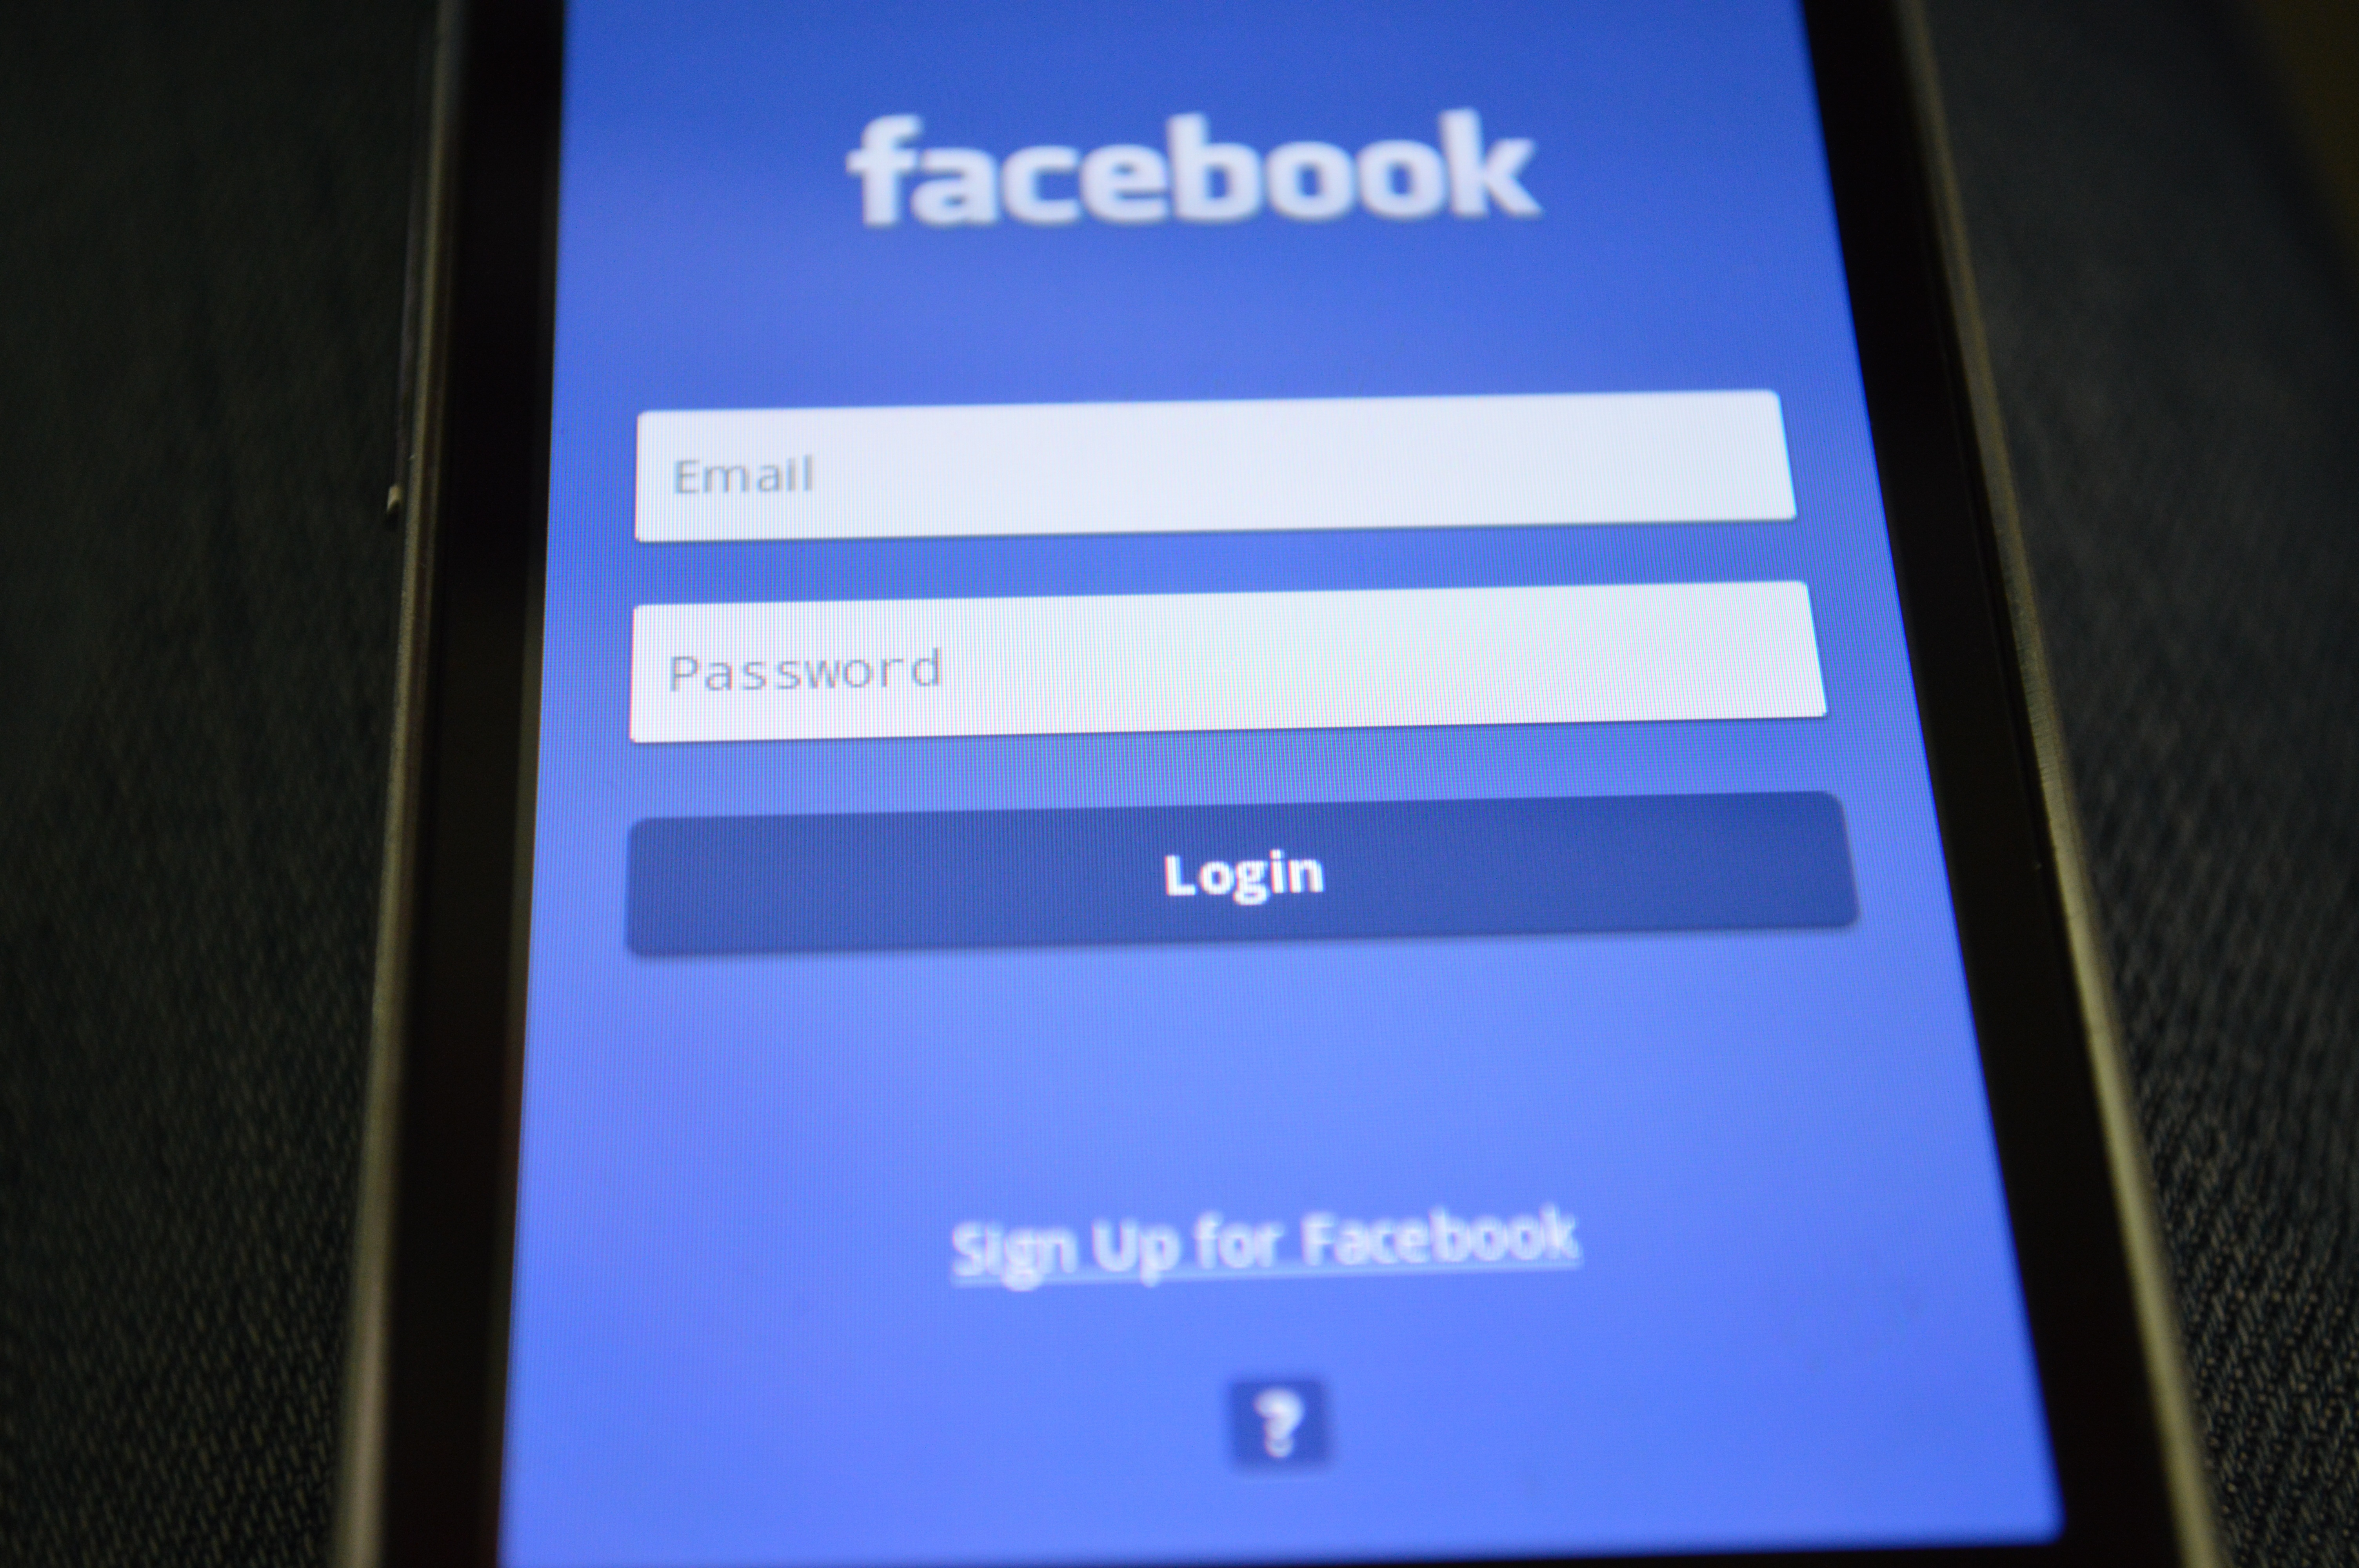 Facebook – Useful tool or complete timewaster?